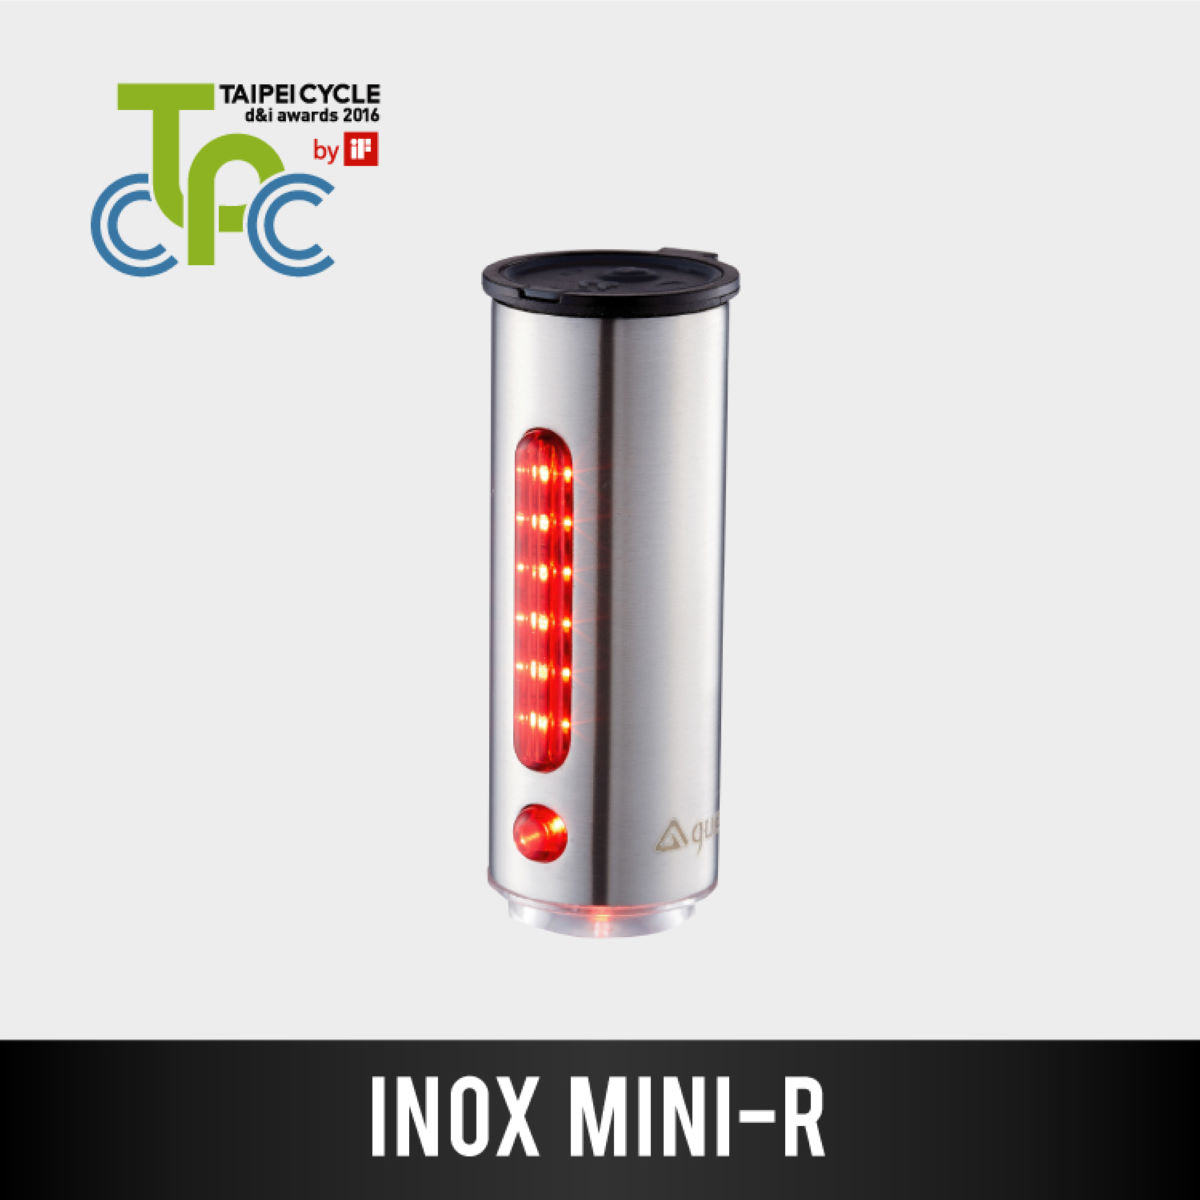 GUEE INOX Mini-R Rear Light - Luces traseras